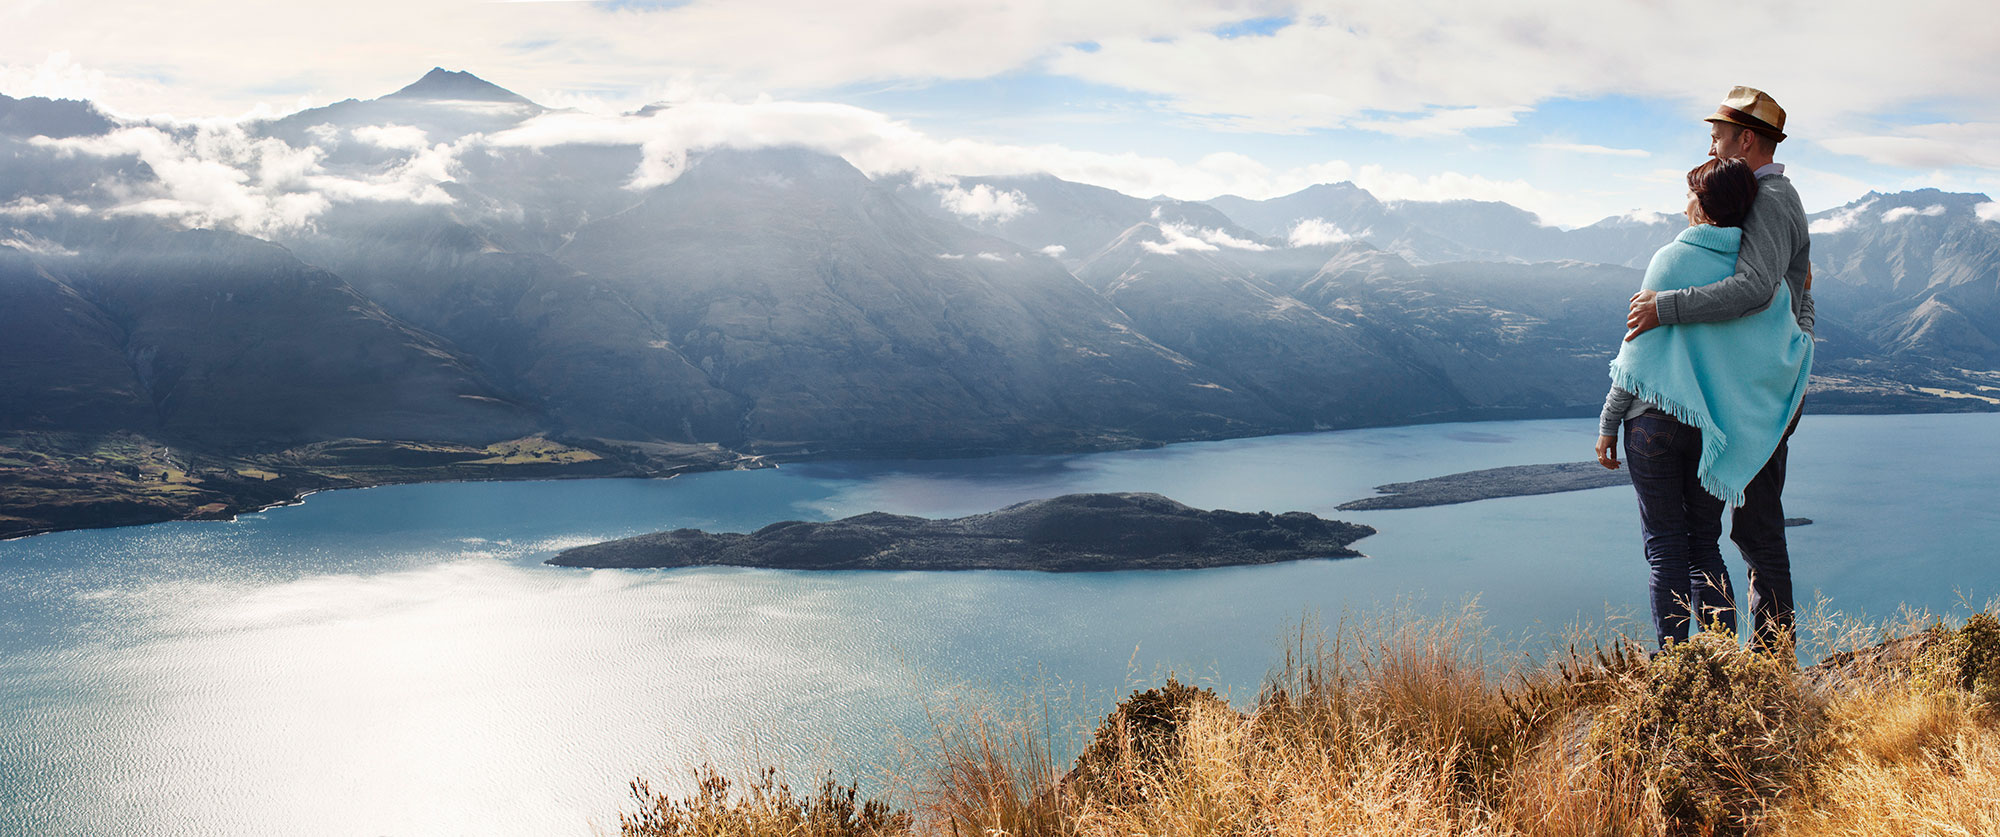 μακελειο νεα ζηλανδια News: Indulgent Escape: New Zealand Luxury Vacation